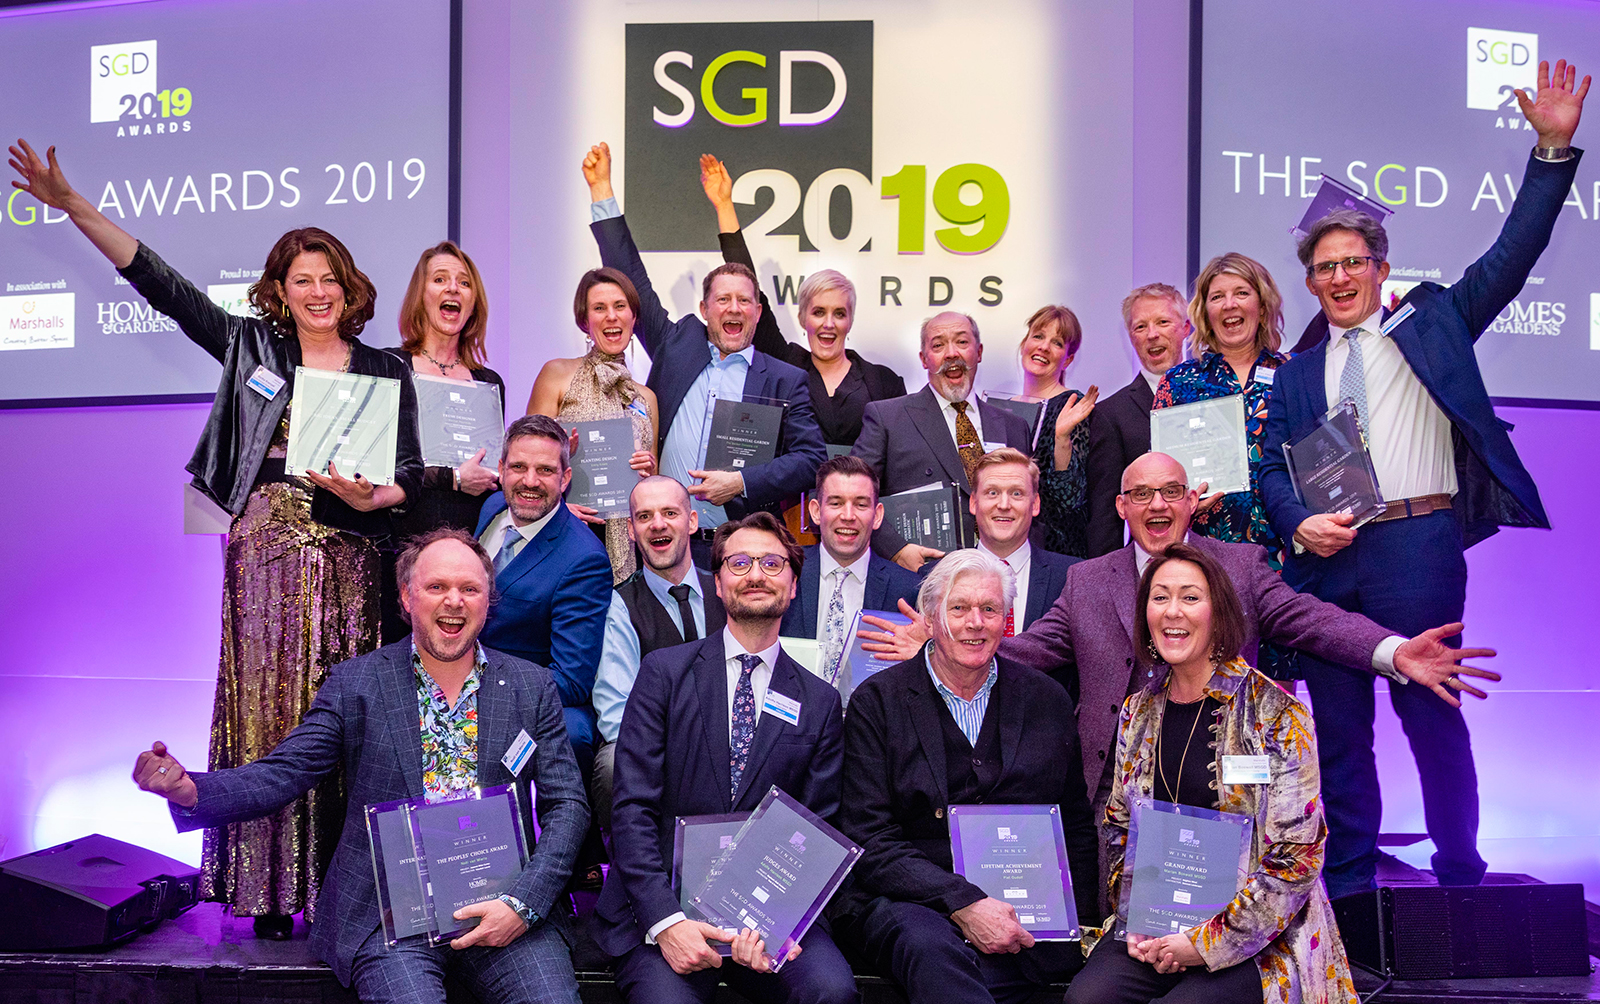 The happy SGD awards winners